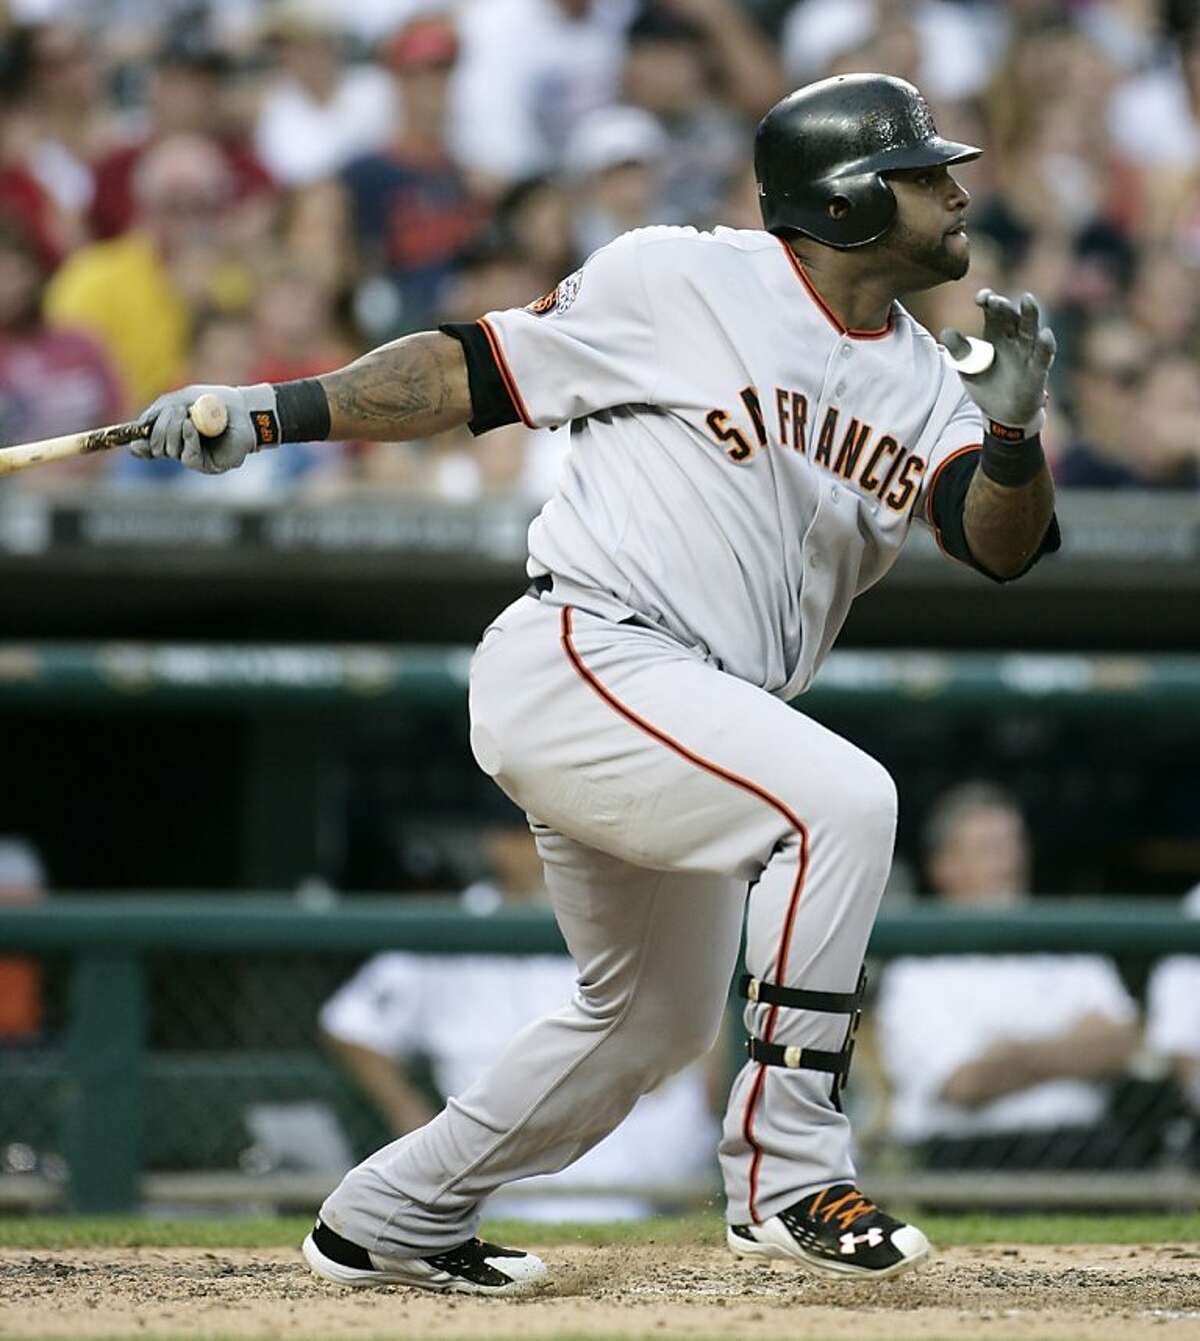 San Francisco Giants' Pablo Sandoval hits an RBI-double to drive in Aaron Roward from second base during the fifth inning of a interleague baseball game against the Detroit Tigers, Friday, July 1, 2011 in Detroit.